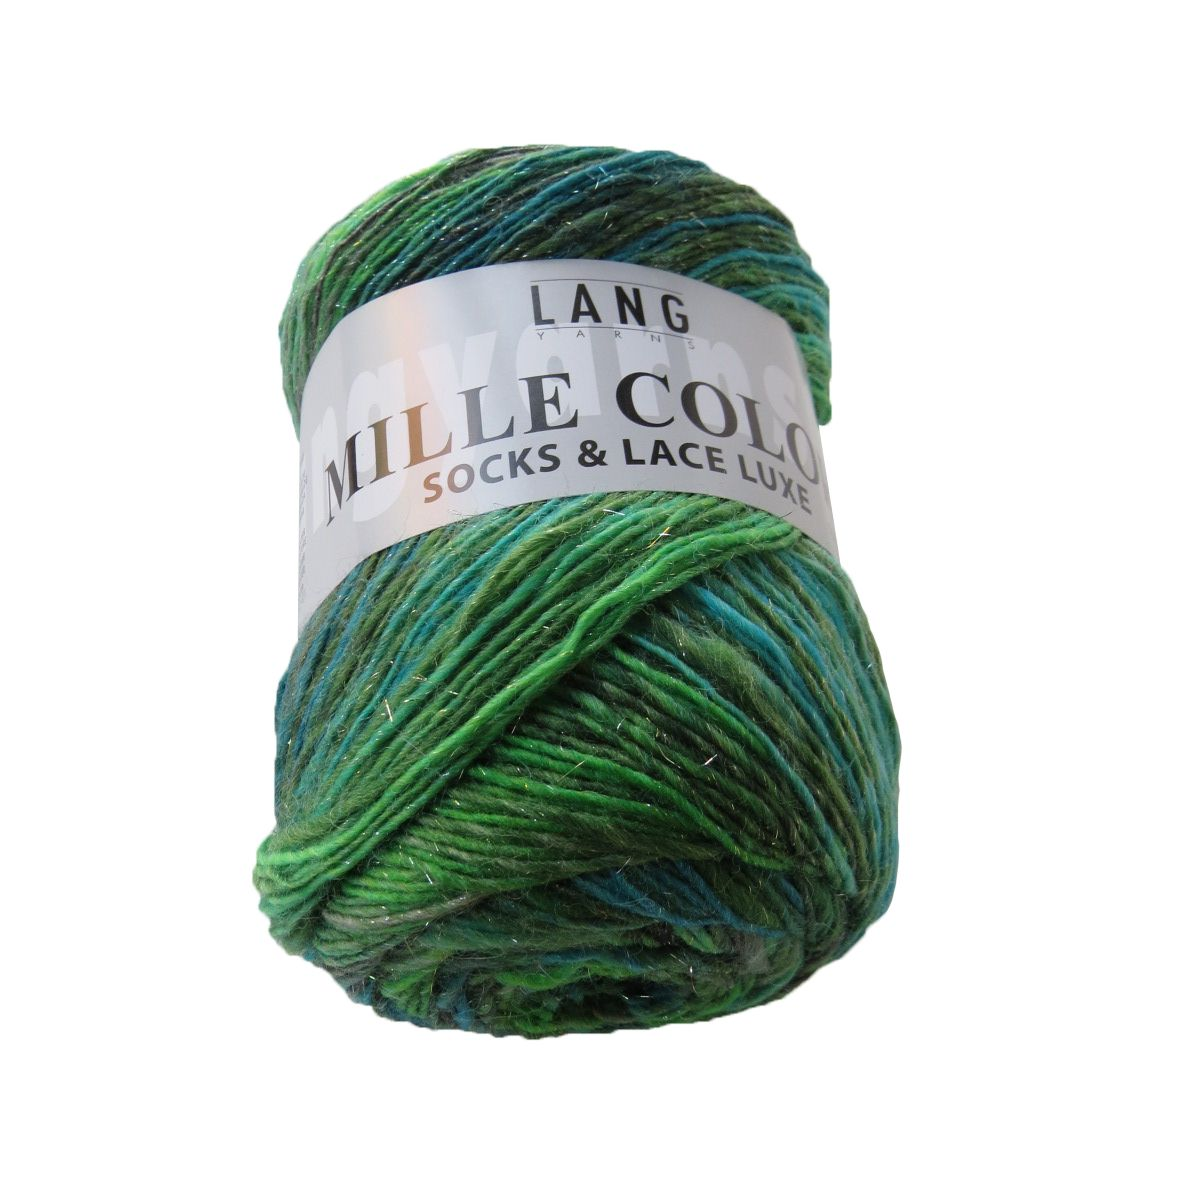 Lang Yarns MILLE COLORI Socks & Lace LUXE 17